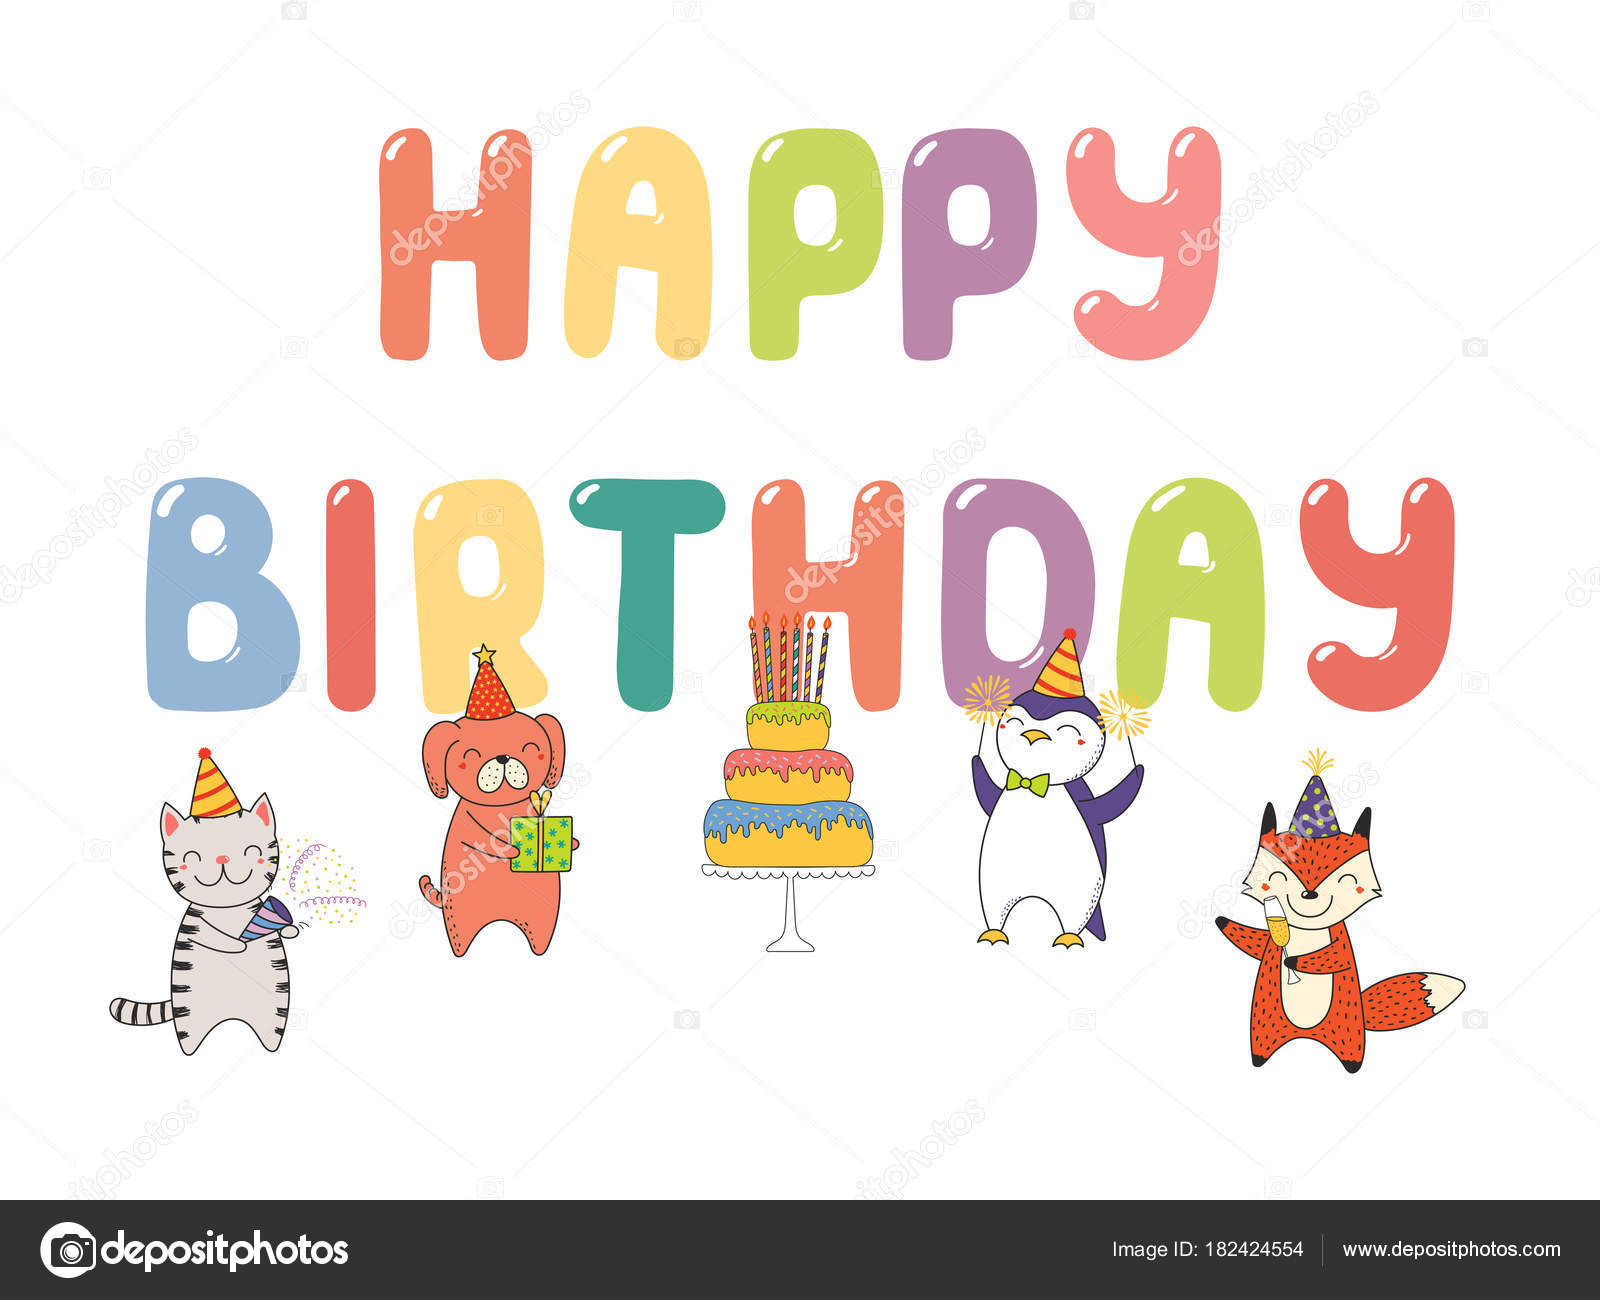 Hand drawn happy birthday greeting card cute funny cartoon animals hand drawn happy birthday greeting card cute funny cartoon animals stock vector kristyandbryce Image collections